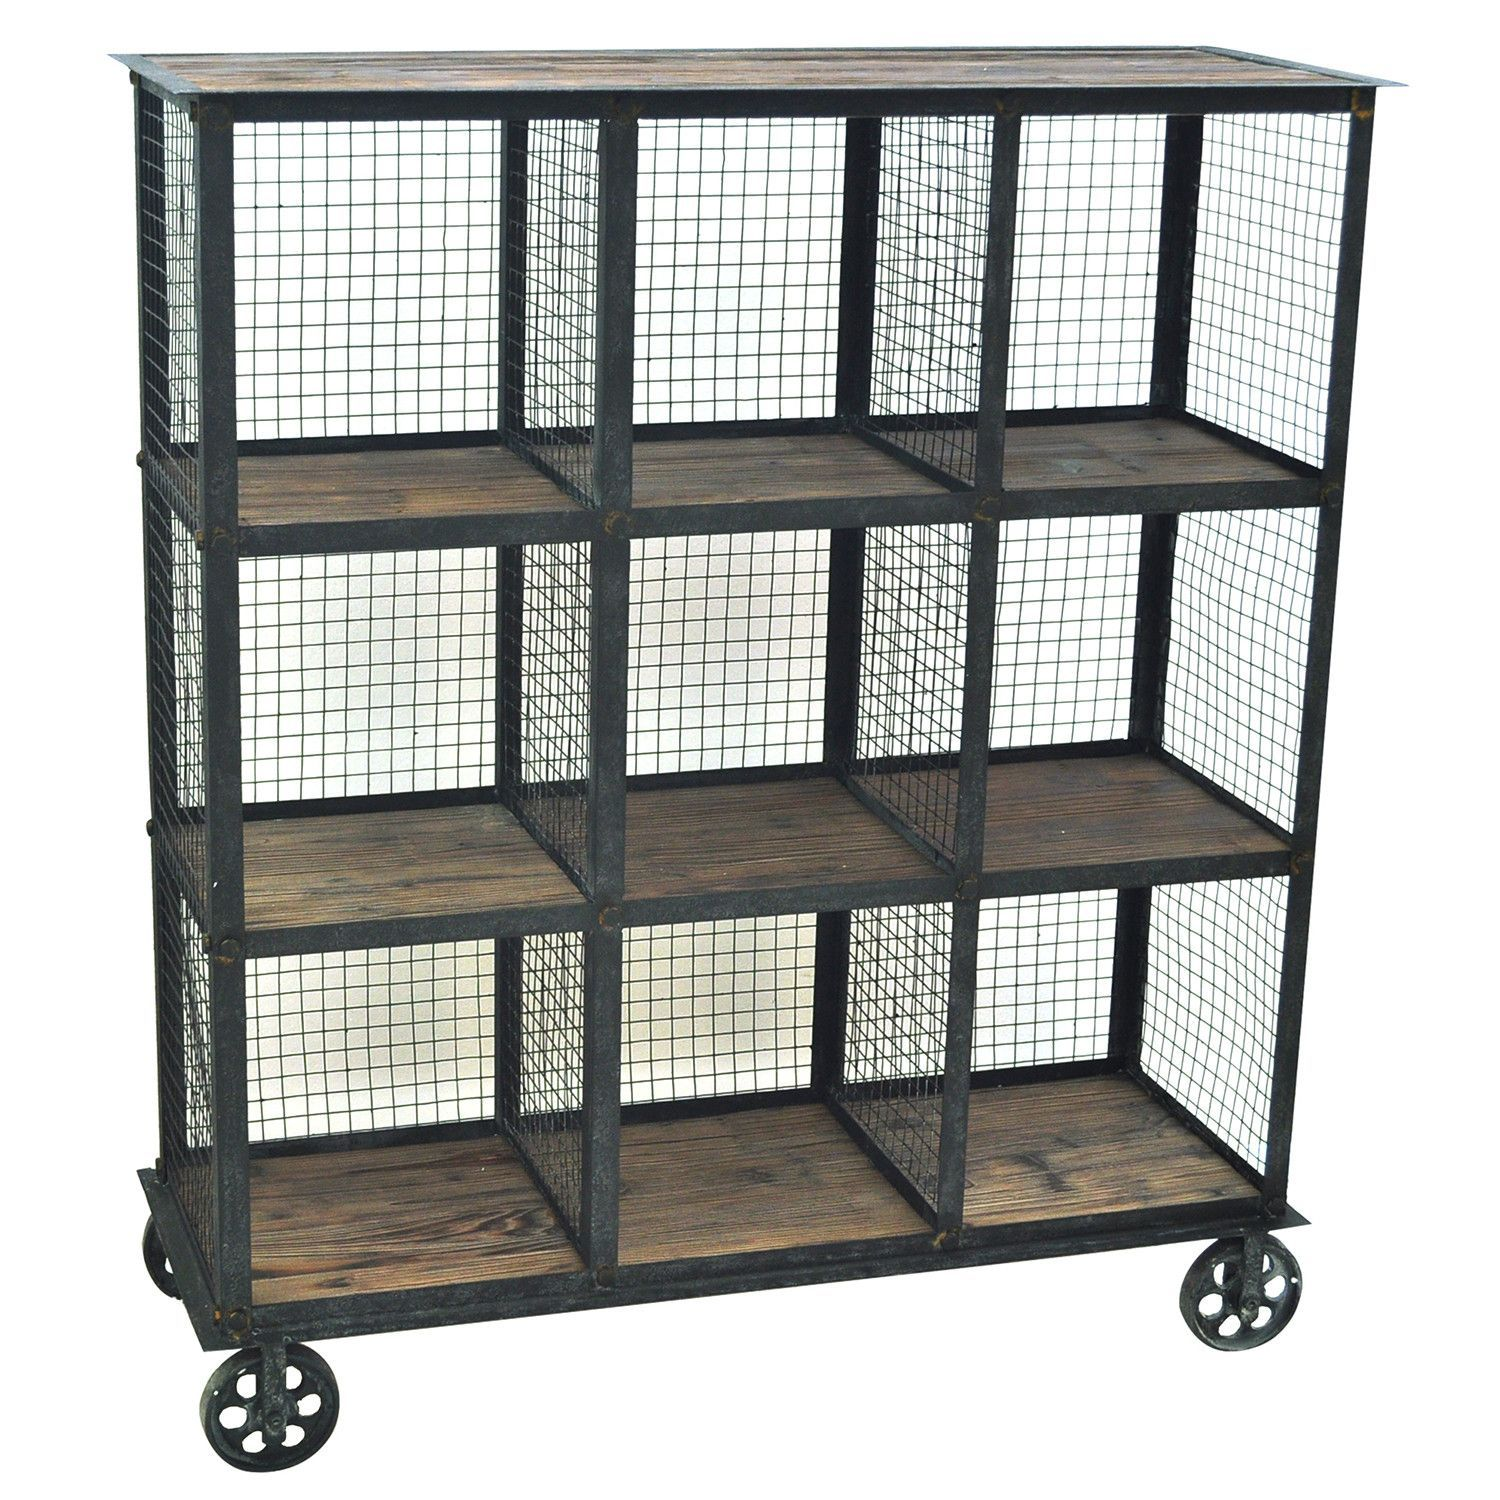 Aluminum Bookcase Perfect For A Library This Industrial Metal And Wood